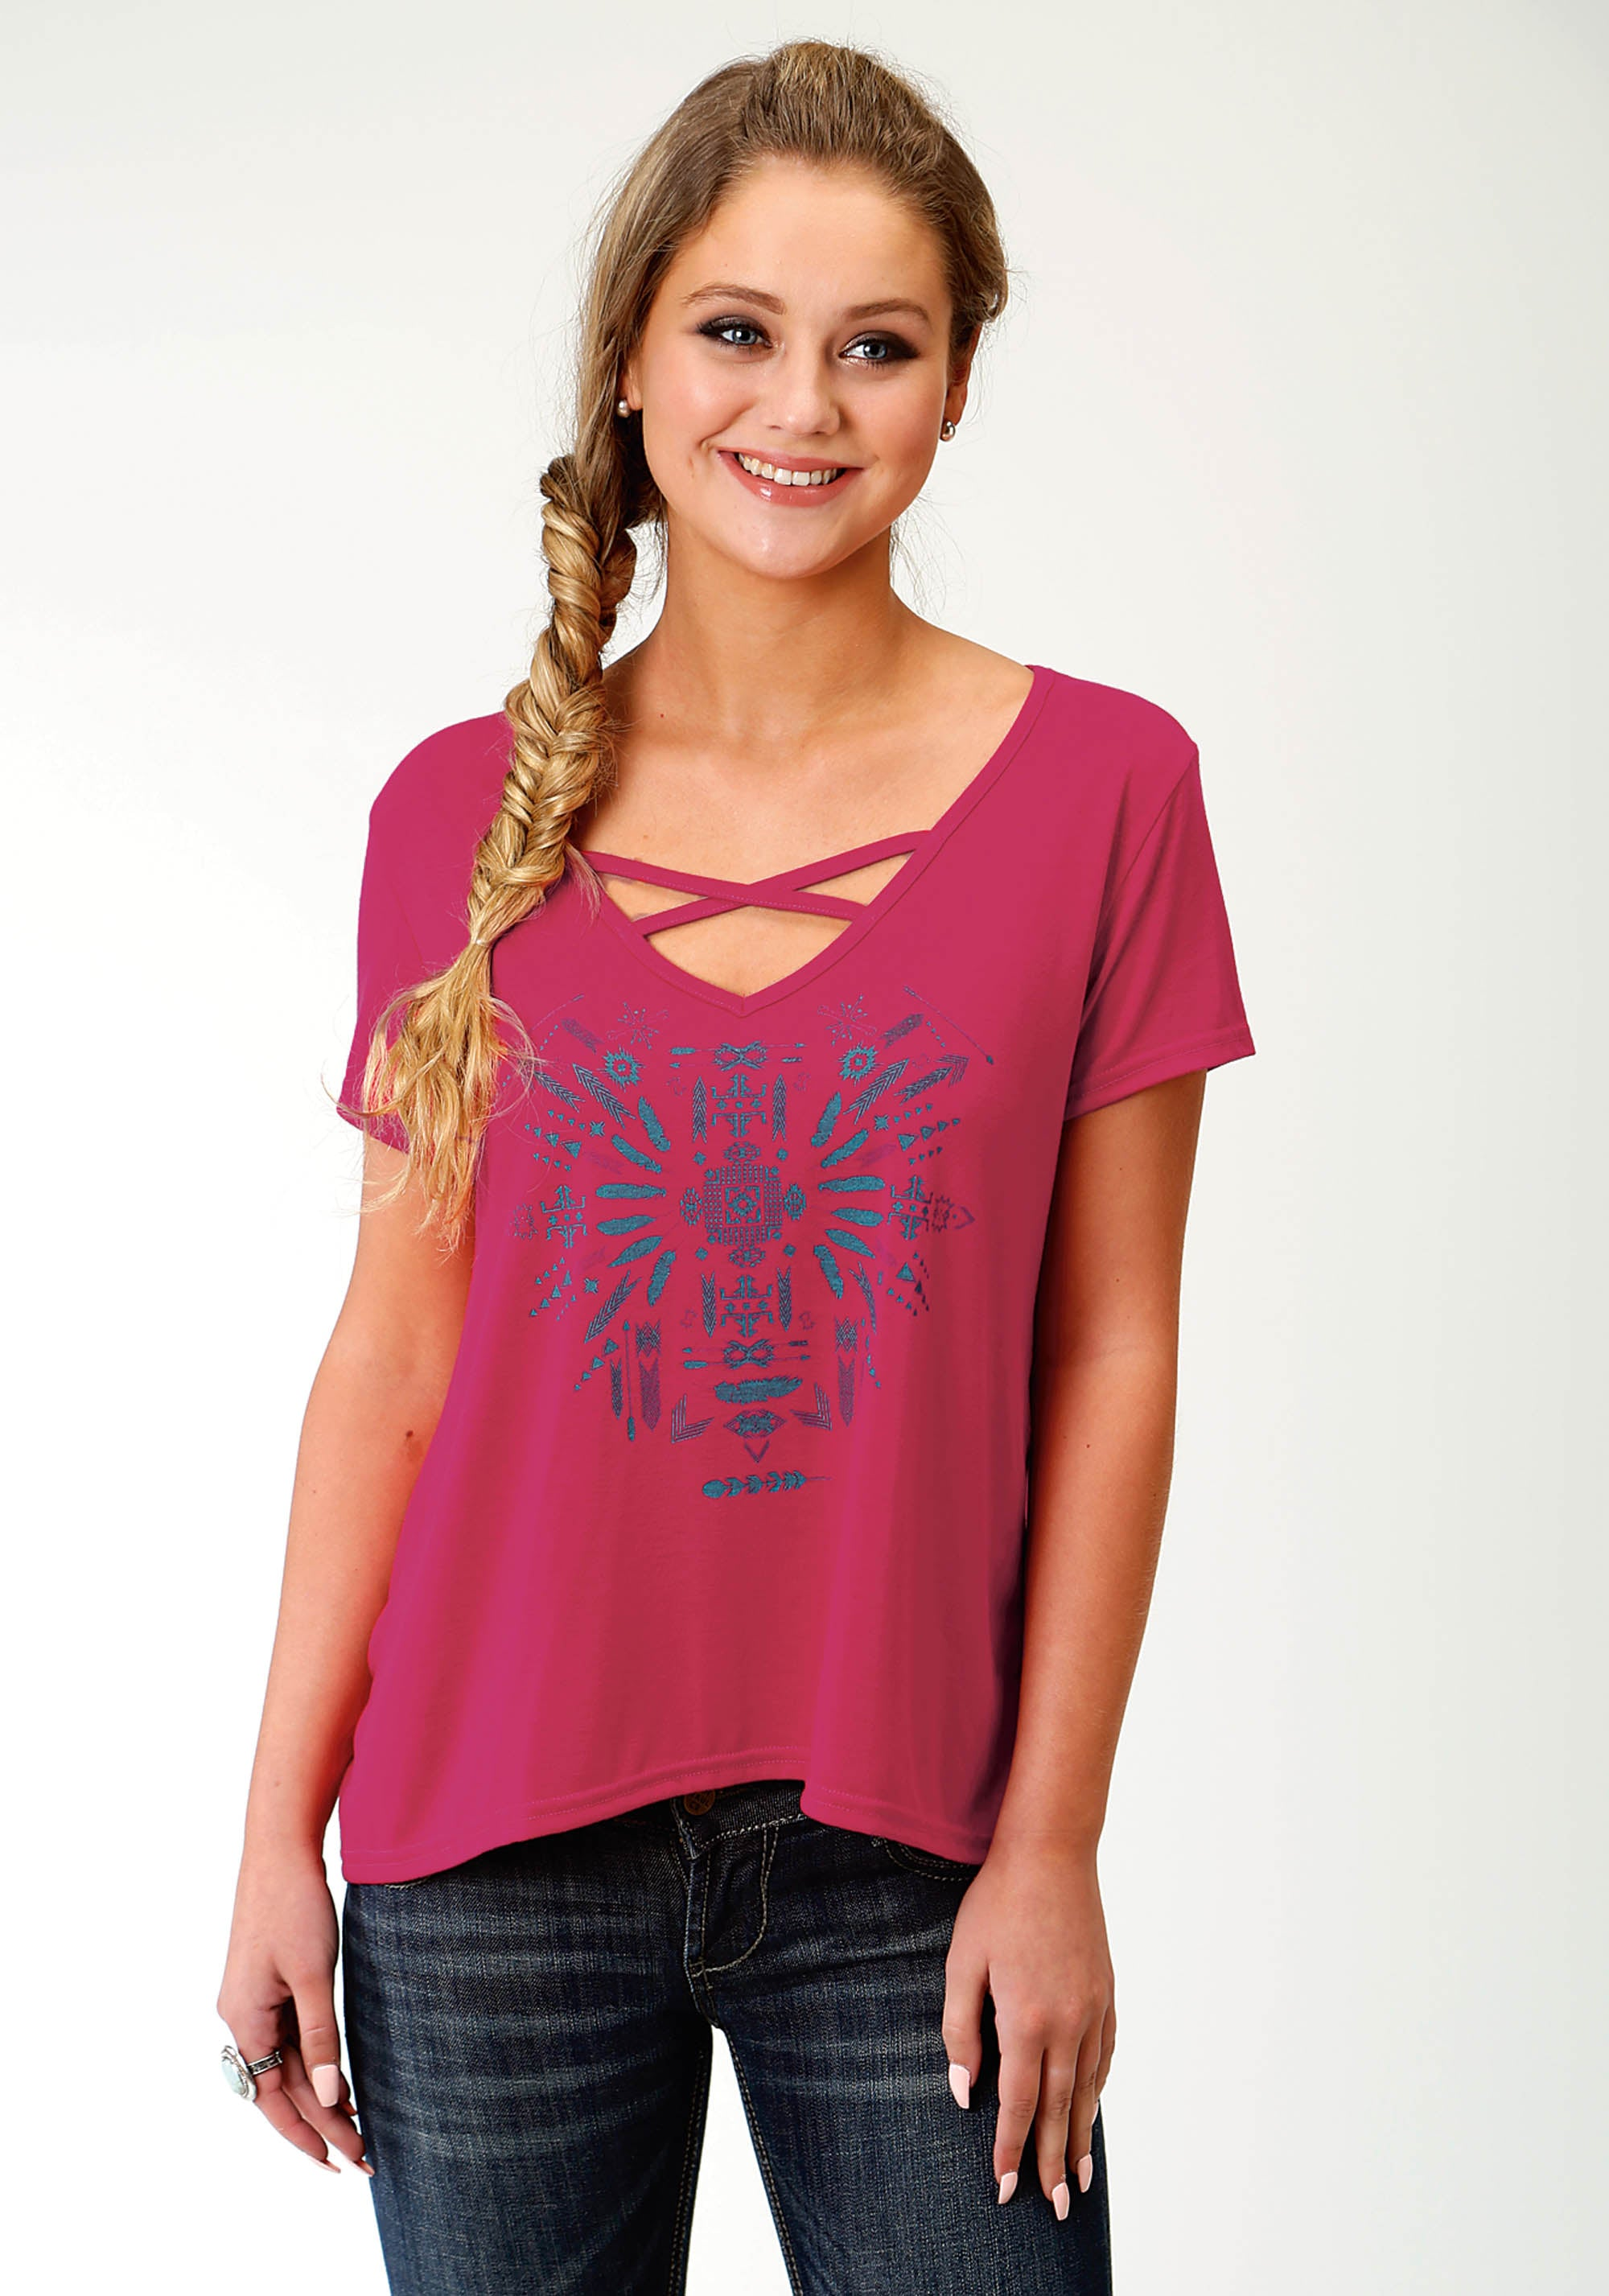 ROPER WOMENS PINK 3126 POLY RAYON JERSEY TEE FIVE STAR COLLECTION- SPRING II SHORT SLEEVE